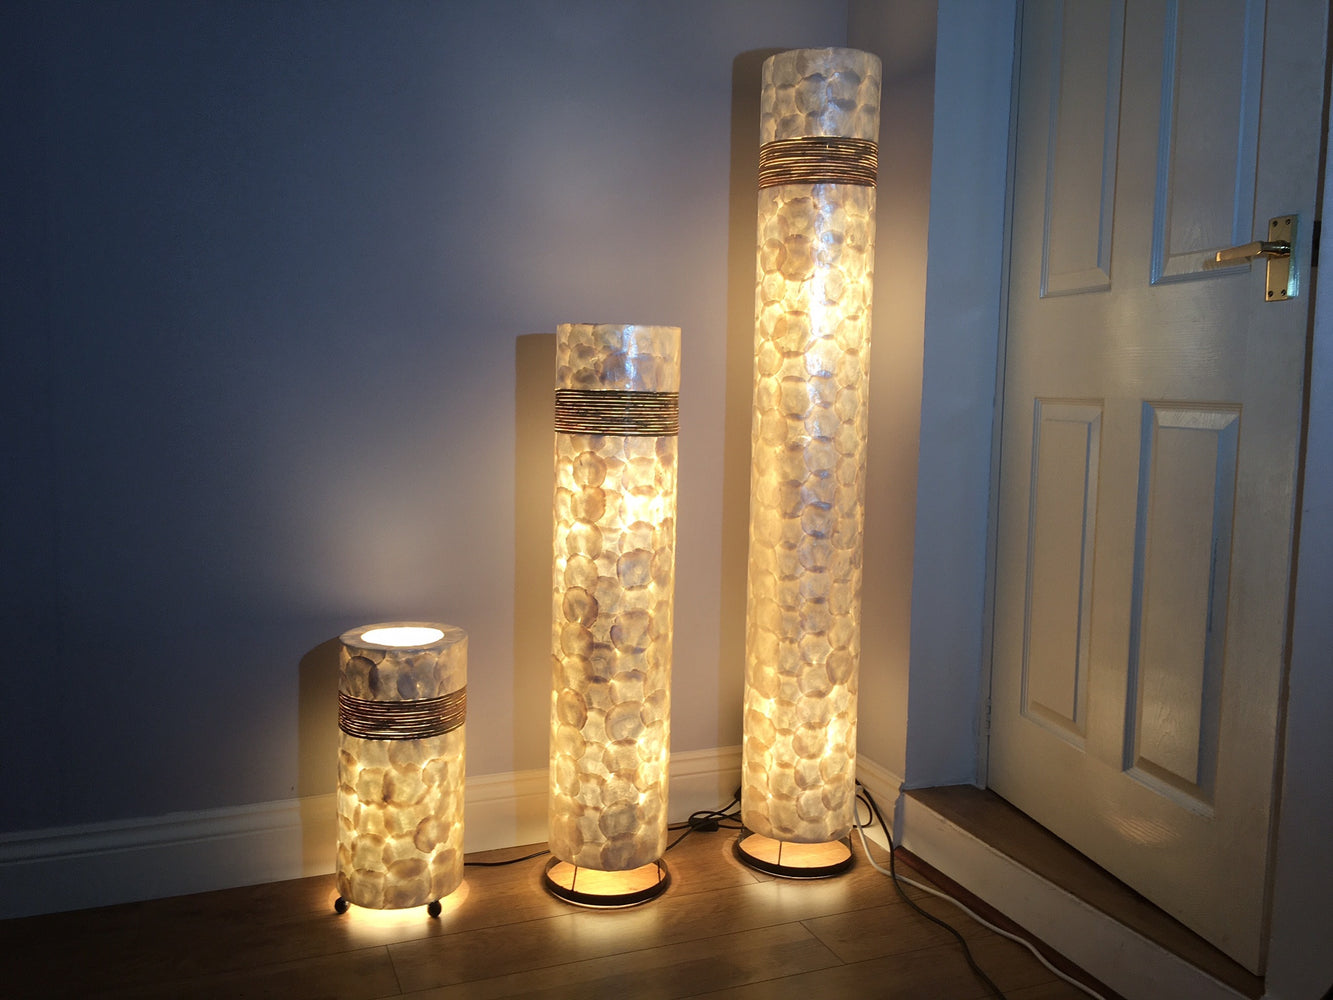 Shell and rattan lamps